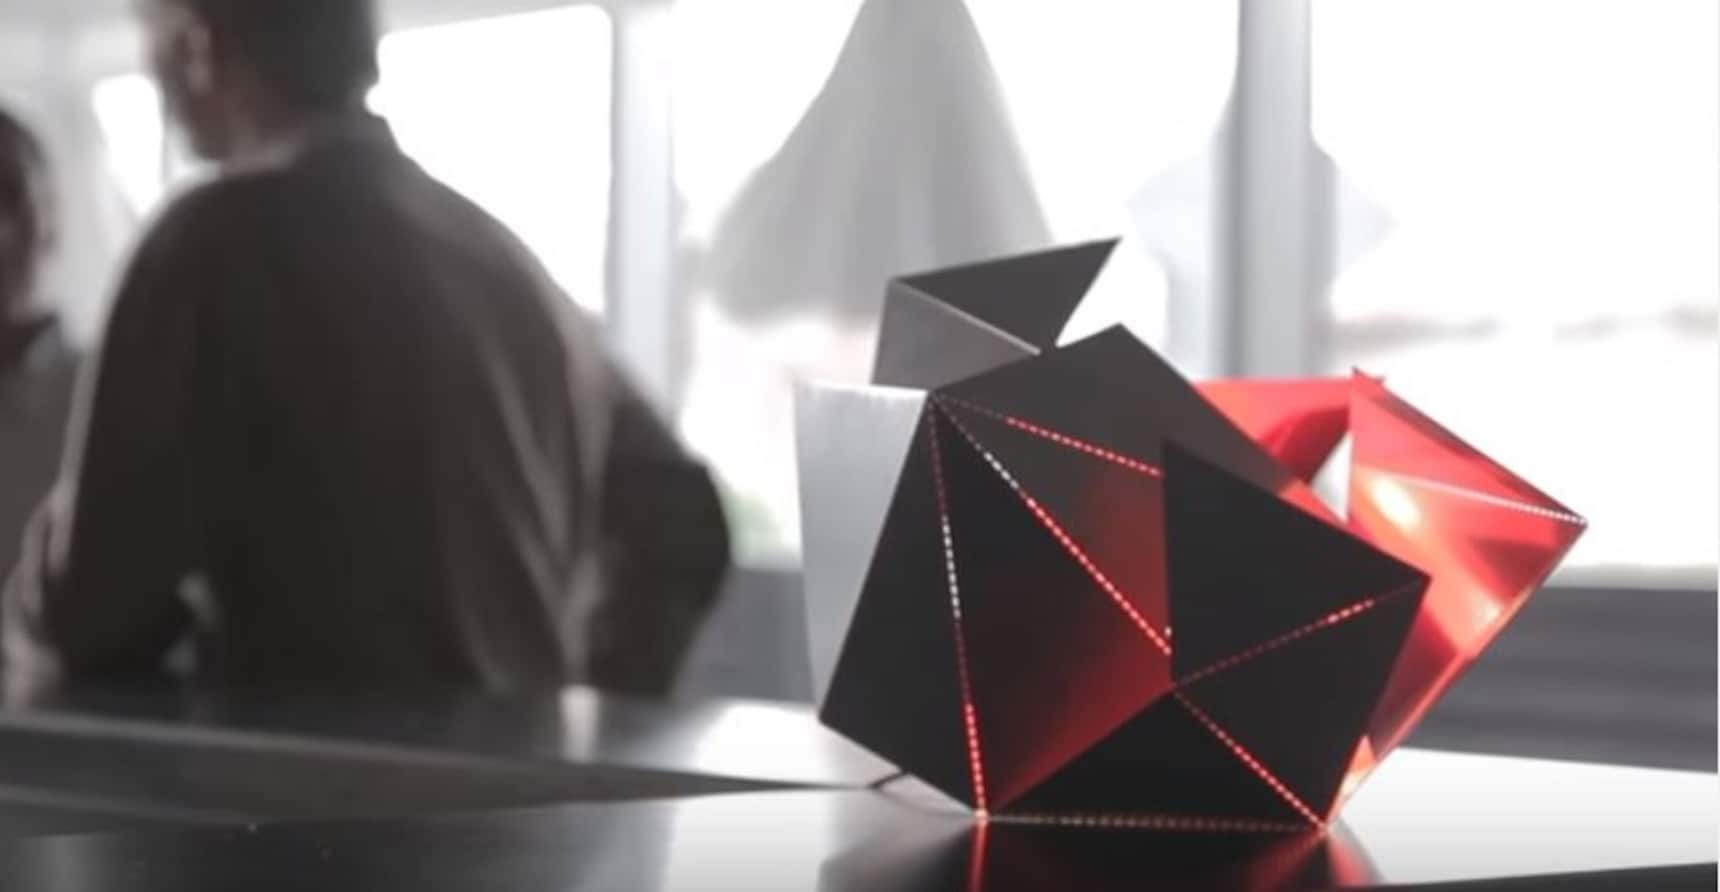 Origami-Style Lamp